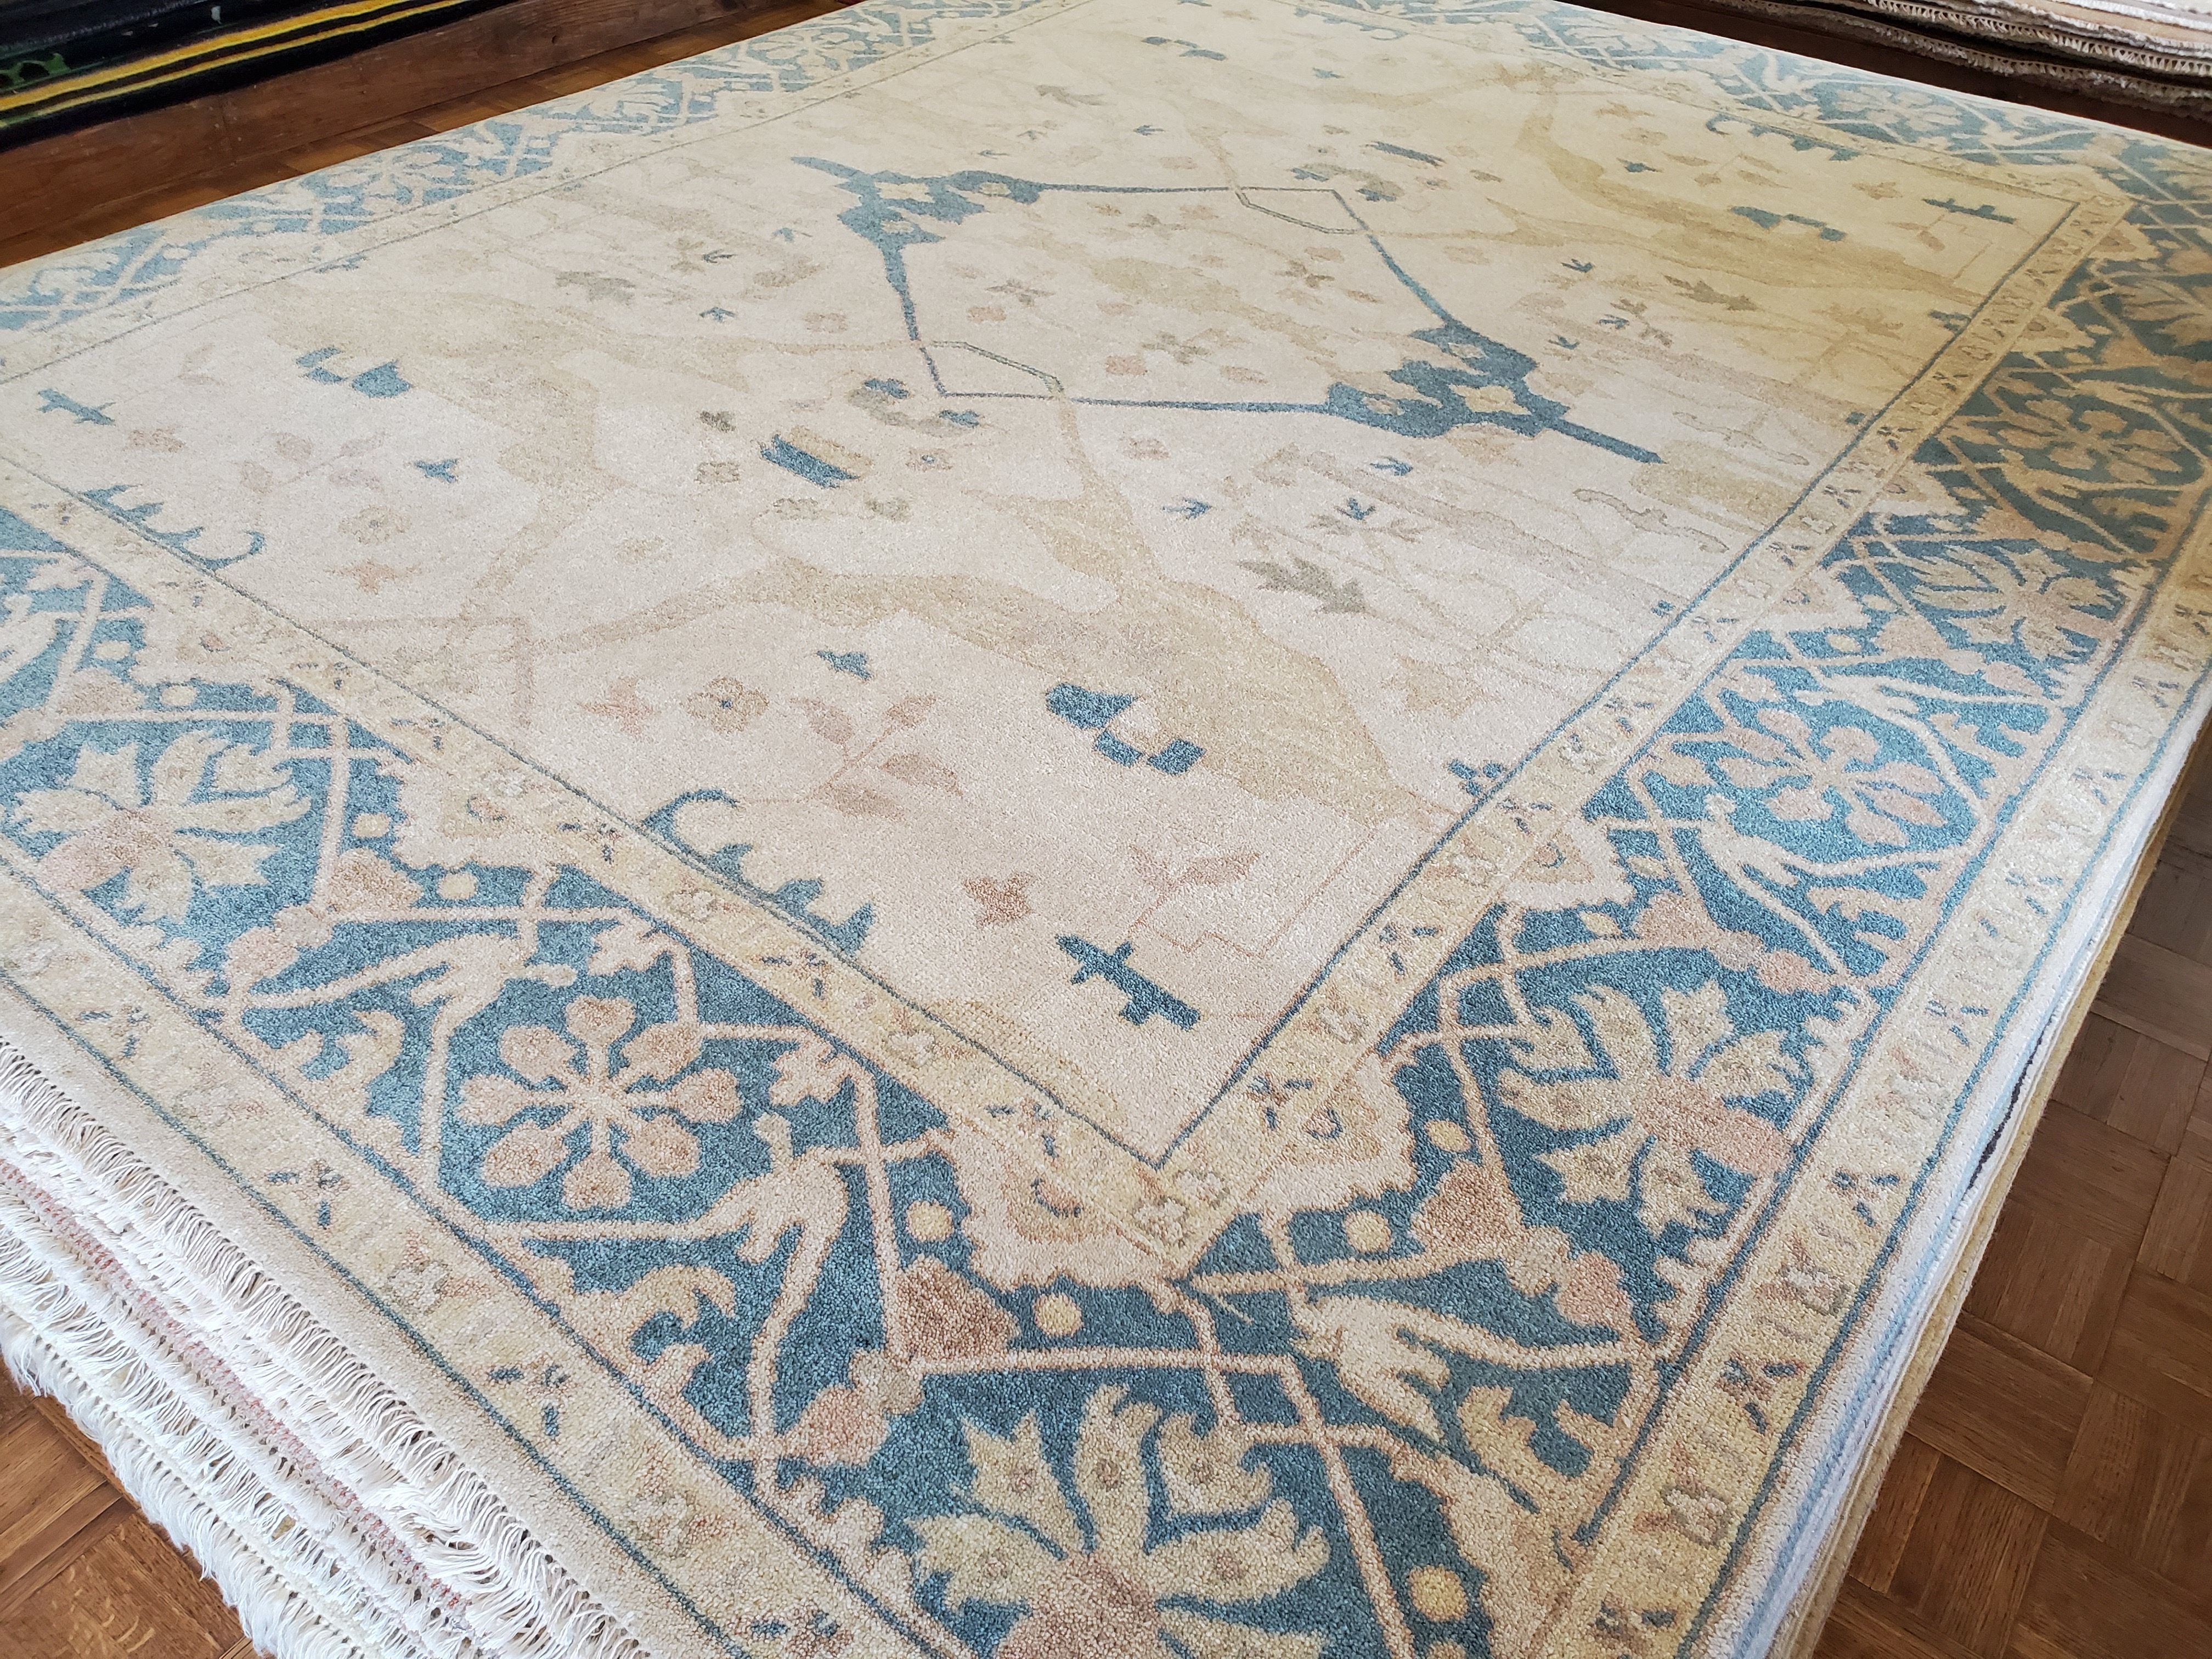 Oushak Ocean Blues...  Vintage Oushak Oriental Rug  8x10  $1175 reduce from $3950 Call 205-870-4444 or drop by if it's for you!  Please share! 😉 #nilipourorientalrugs #MayDayDeal #familybusiness #since1972 #fullservice #shoplocal #happycustomer #artyoucantreadon #orientalrug #rug #arearug #naturalfibers #wholesaleprices #directimporting #affordableluxury #functionalrug #practicalrug #appeal #qualityrug #investment #conversationpiece #Lifestyle #rugcleaning #orientalrugcleaning #arearugcleaning